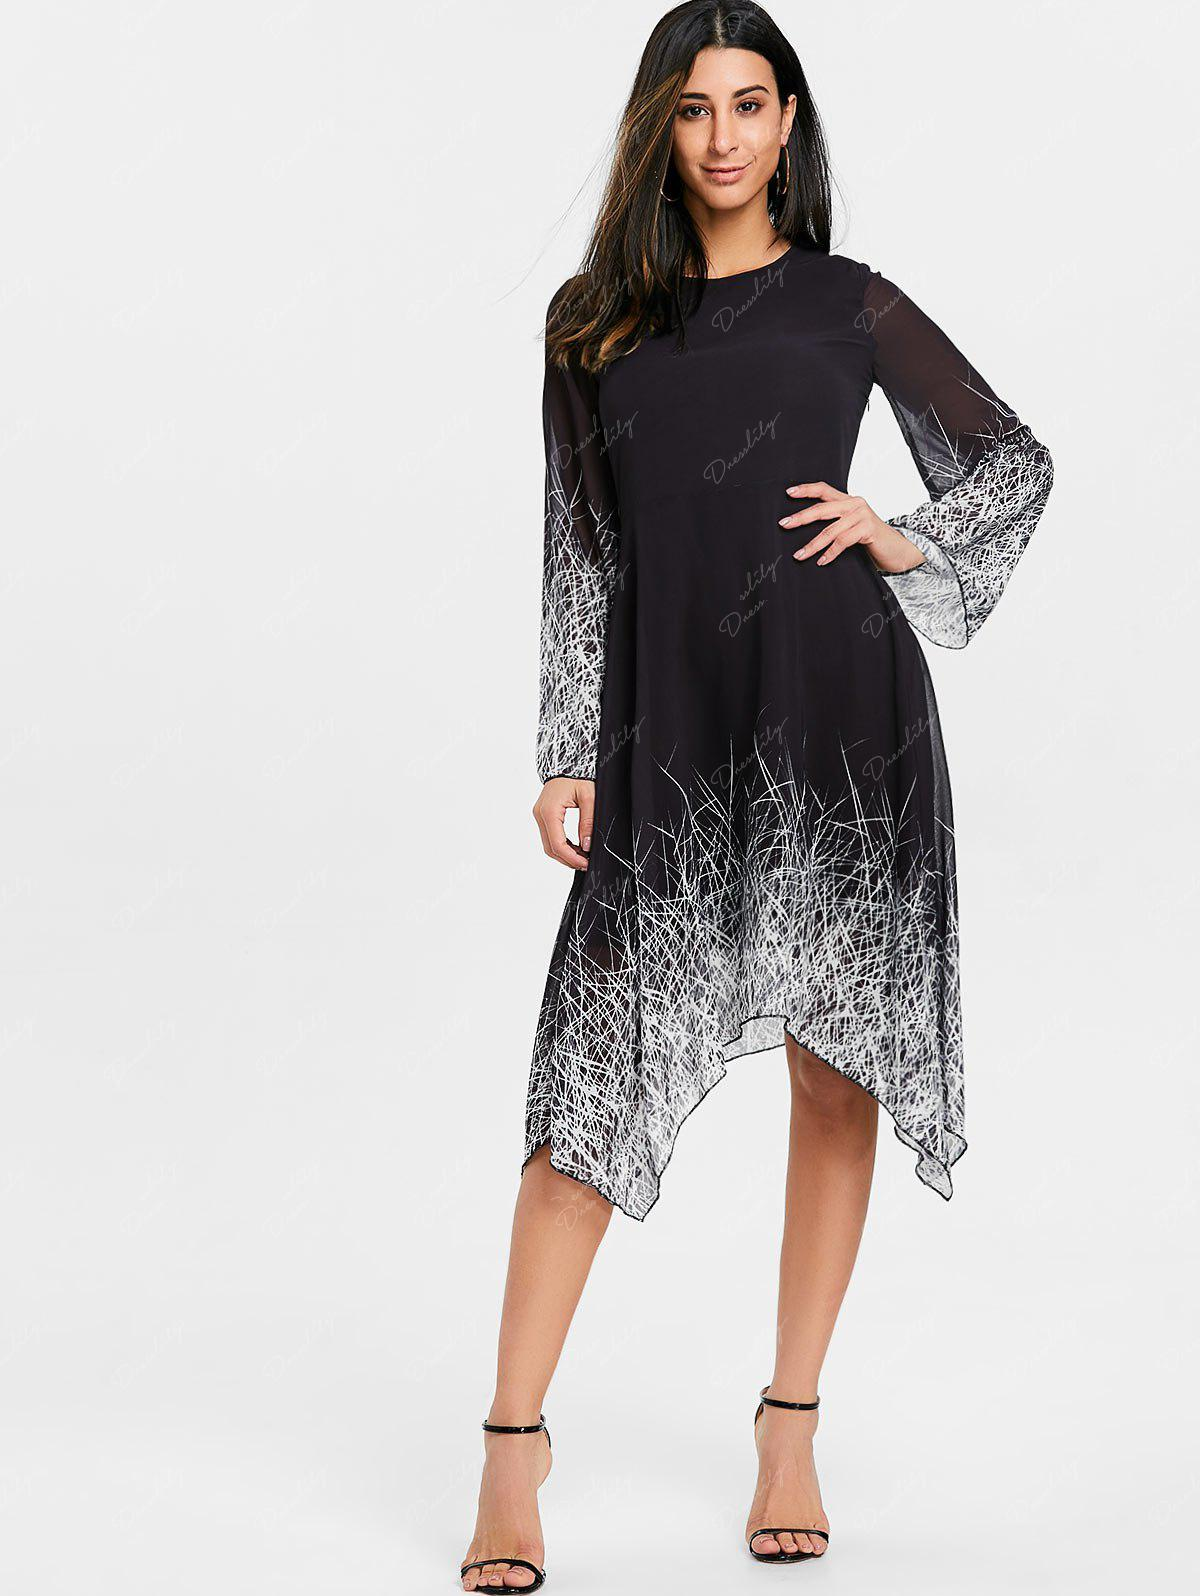 Asymmetric Linear Print Chiffon Dress - BLACK XL